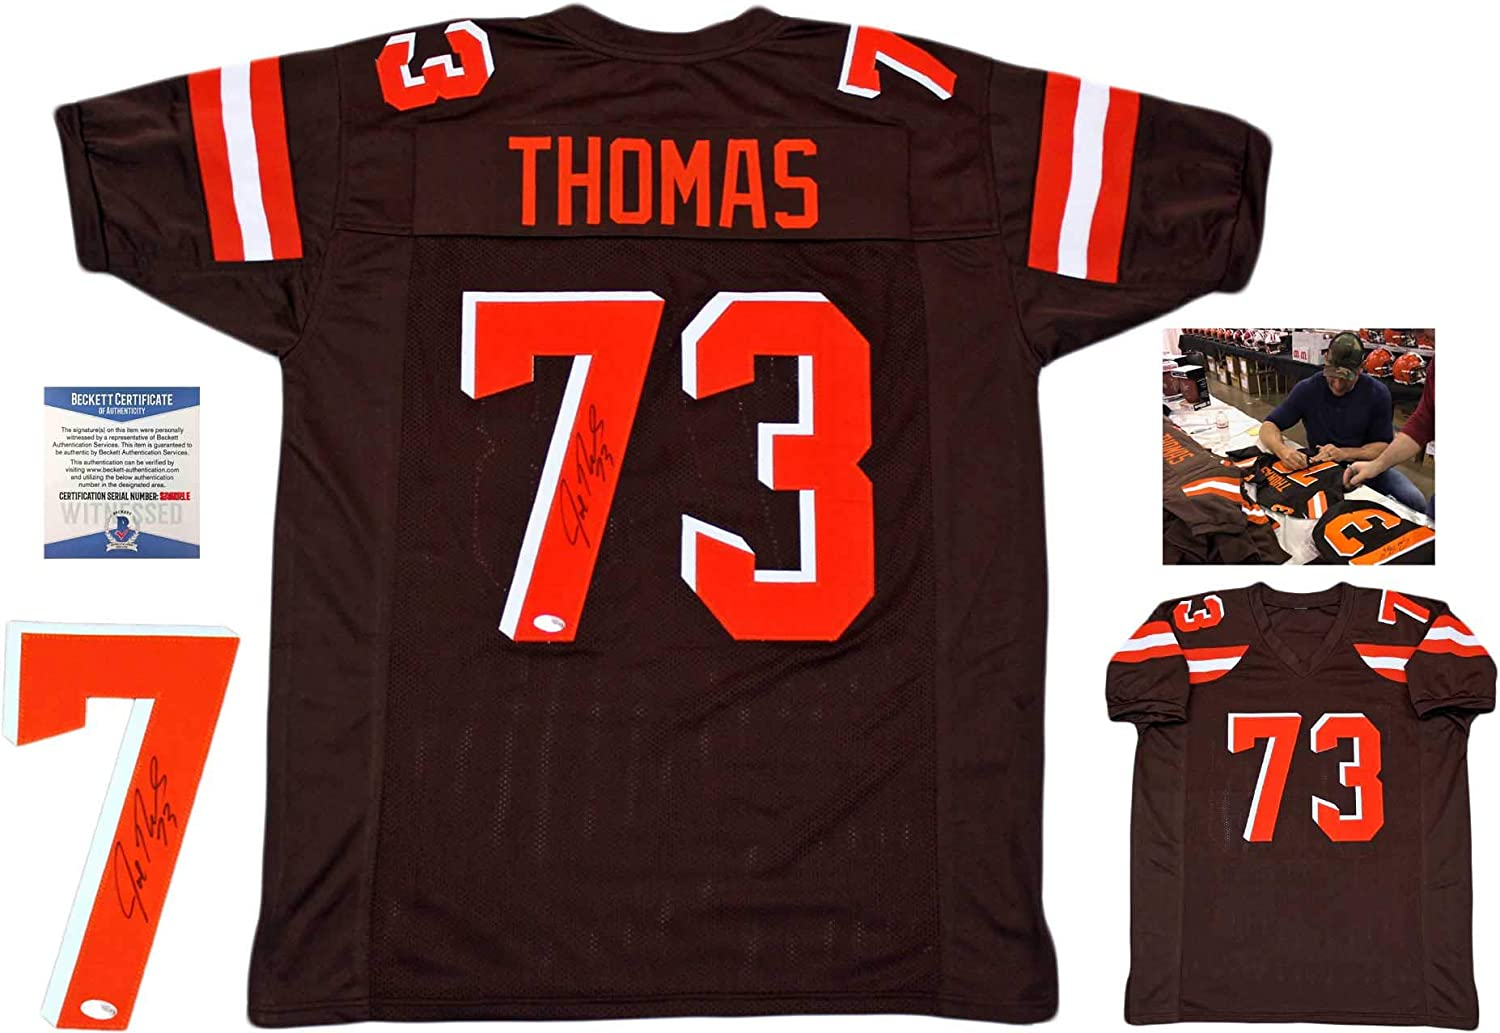 Joe Thomas Autographed Signed Jersey - Brown - Beckett Authentic ...